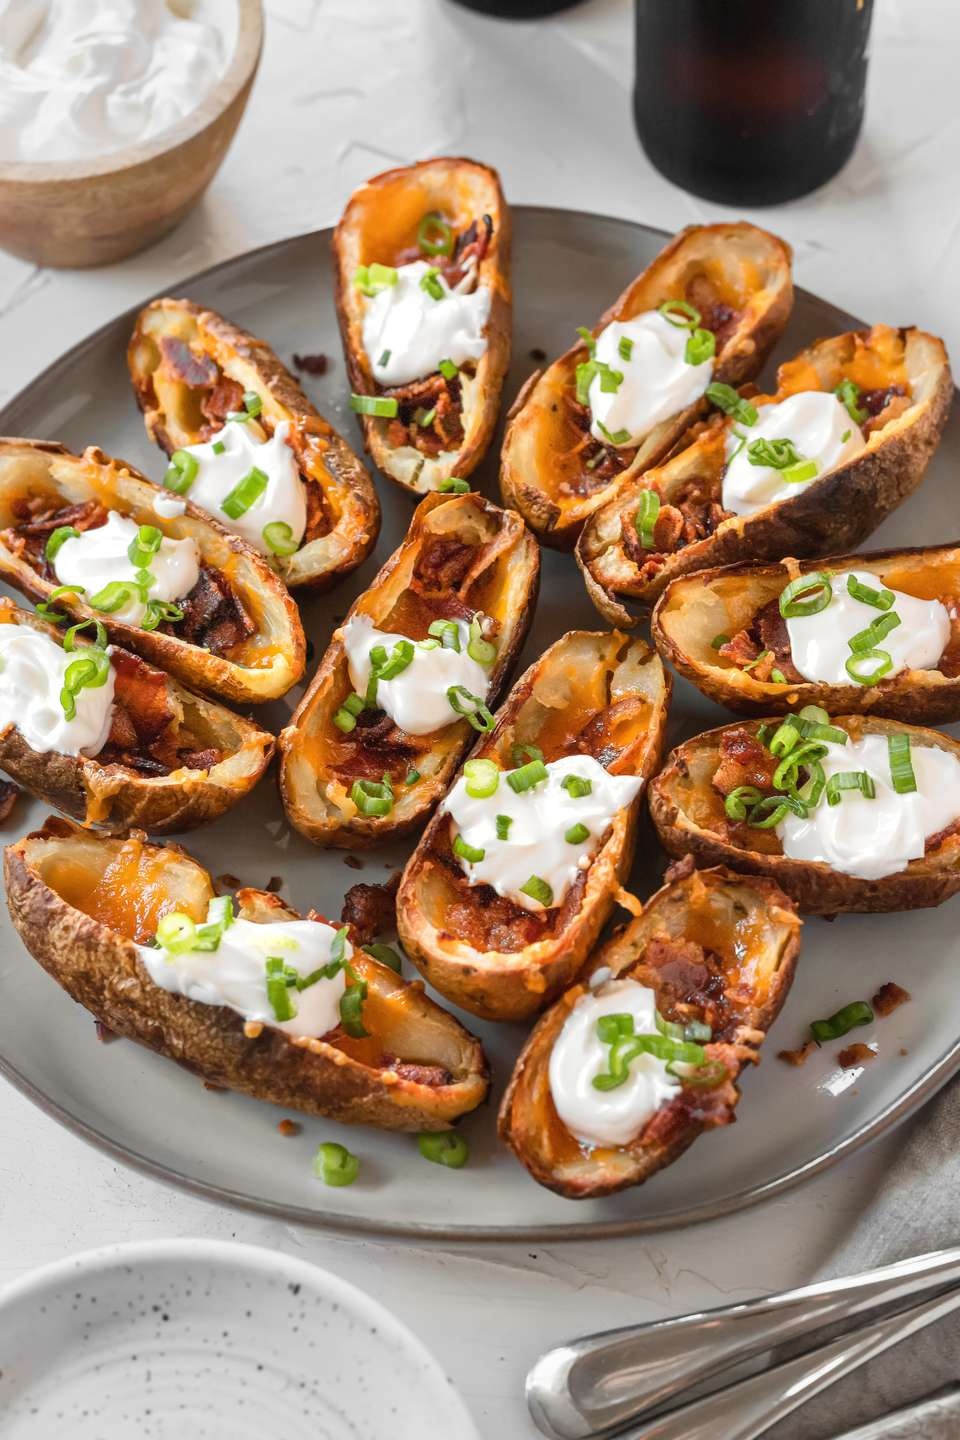 A platter of potato skins topped with cheese and sour cream.